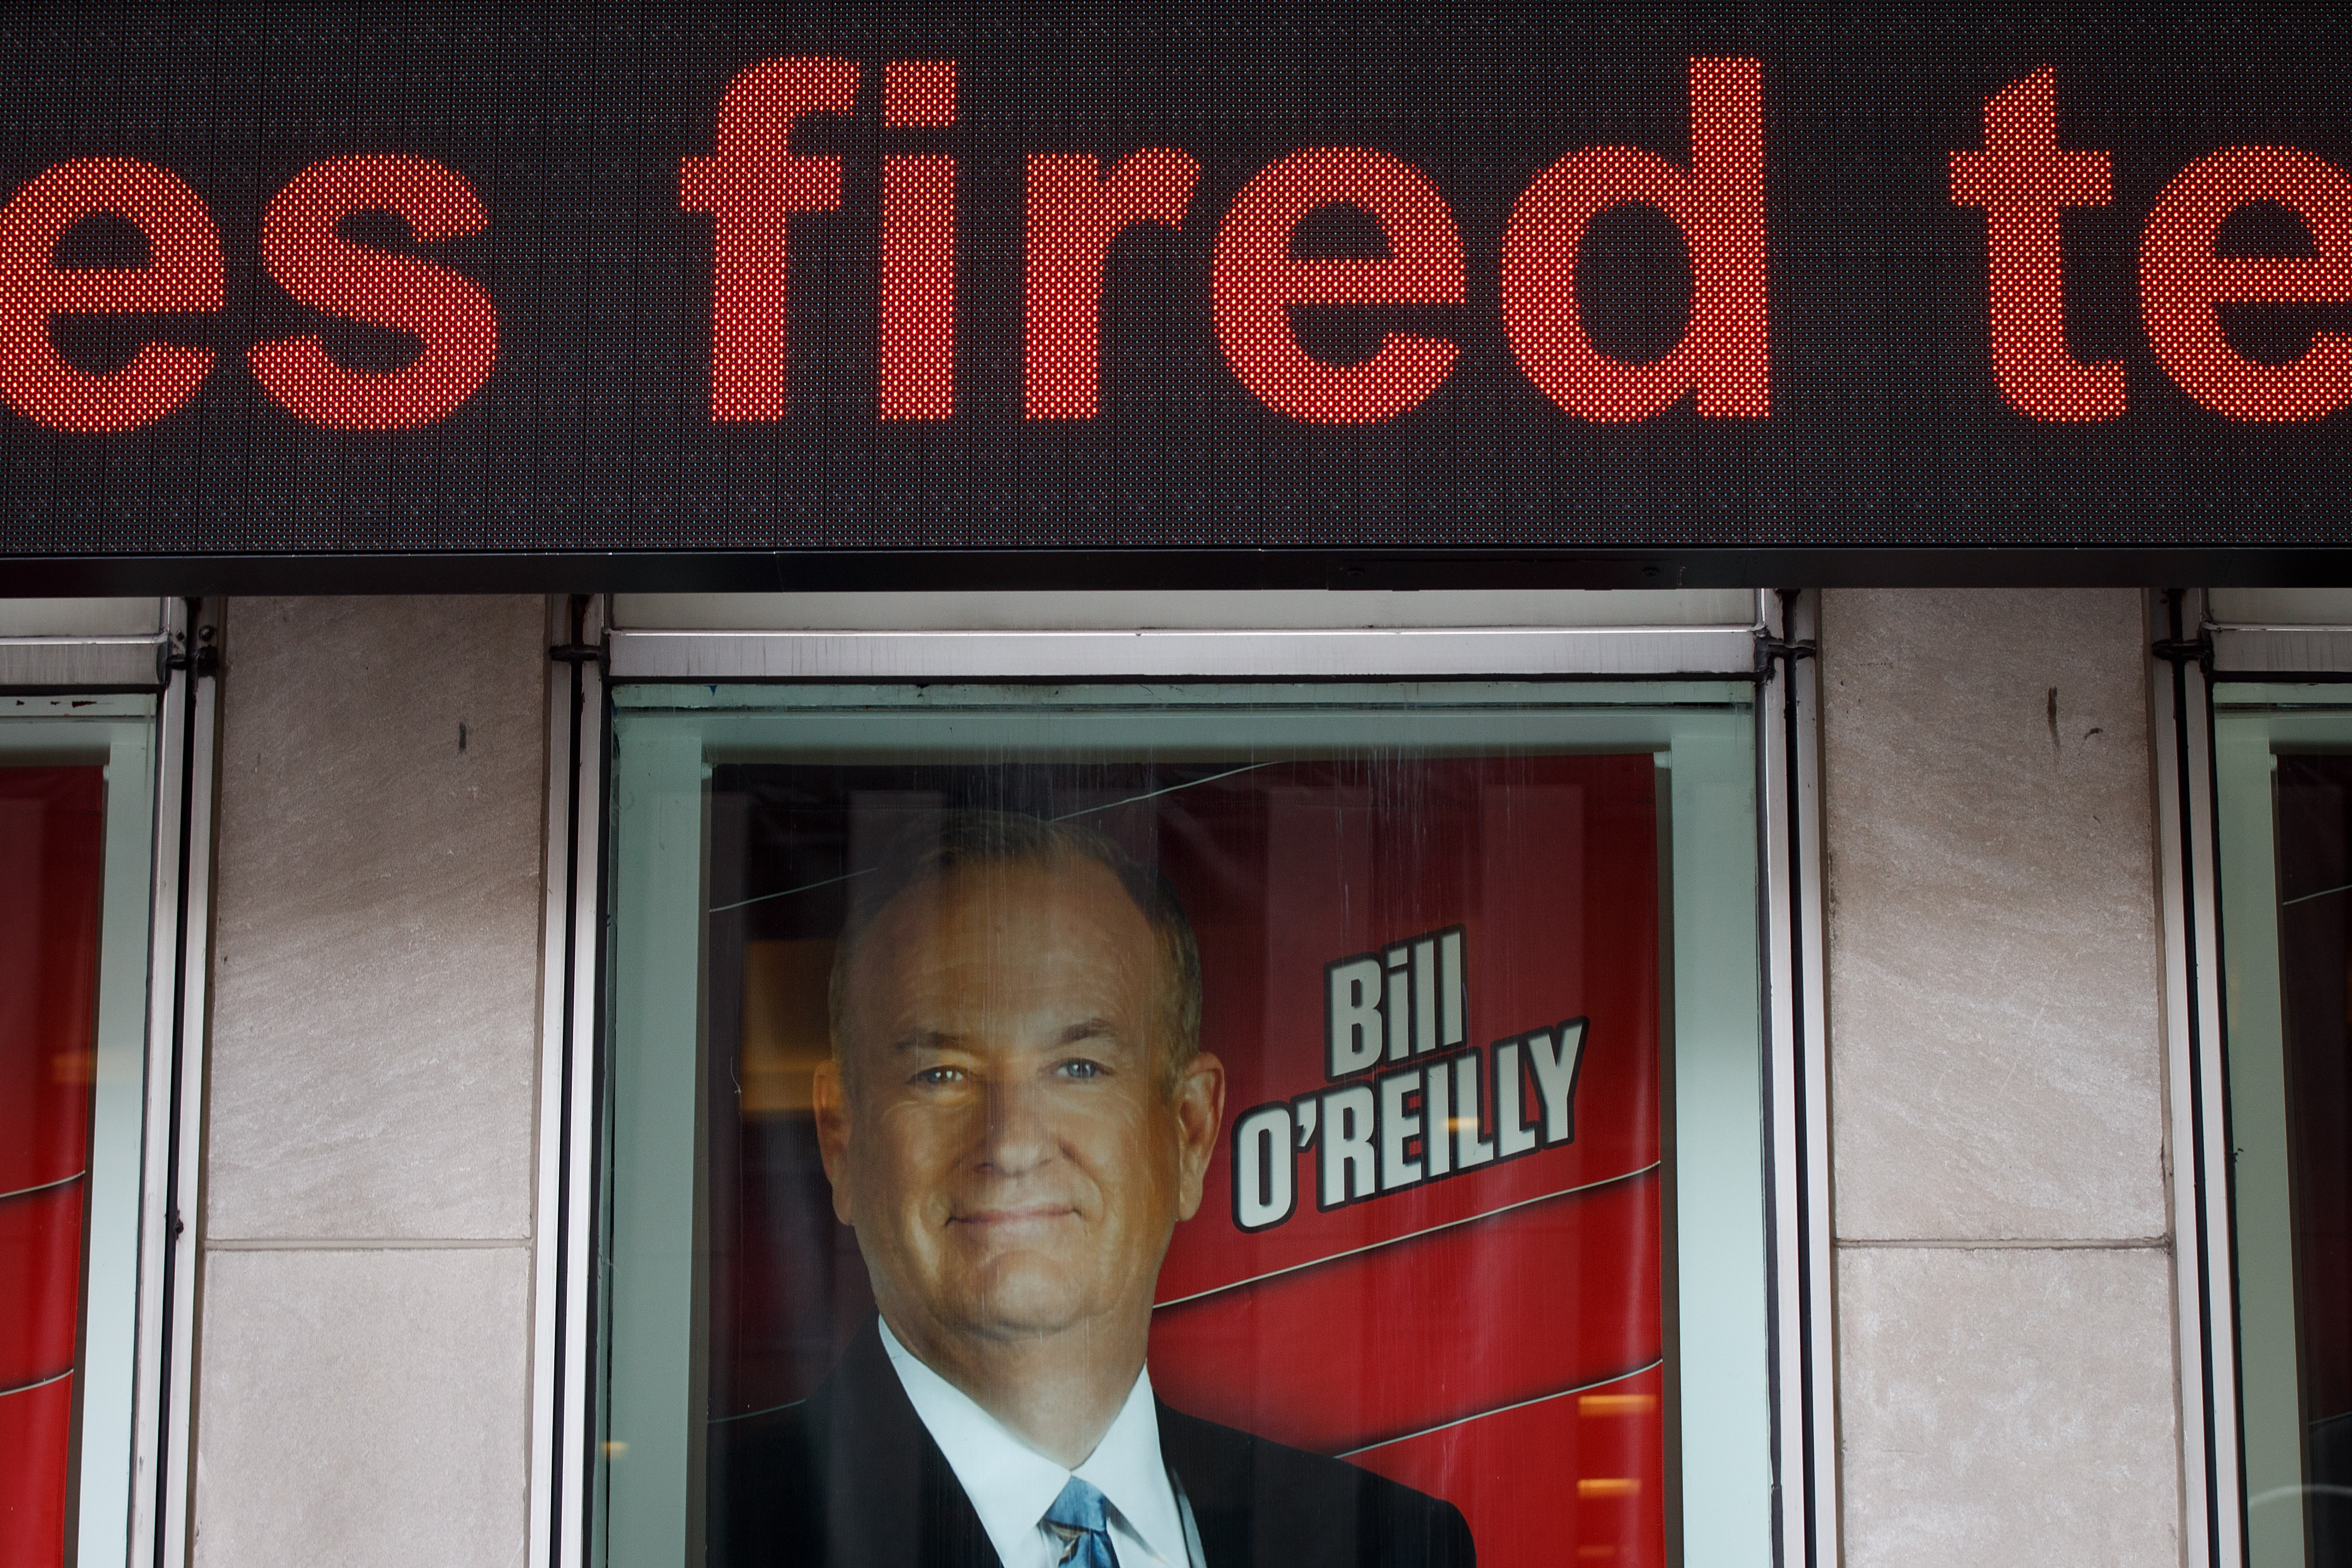 Advertisements for Fox News and Bill O'Reilly stand in a window outside of the News Corp. and Fox News headquarters in Midtown Manhattan, April 19, 2017 in New York City.